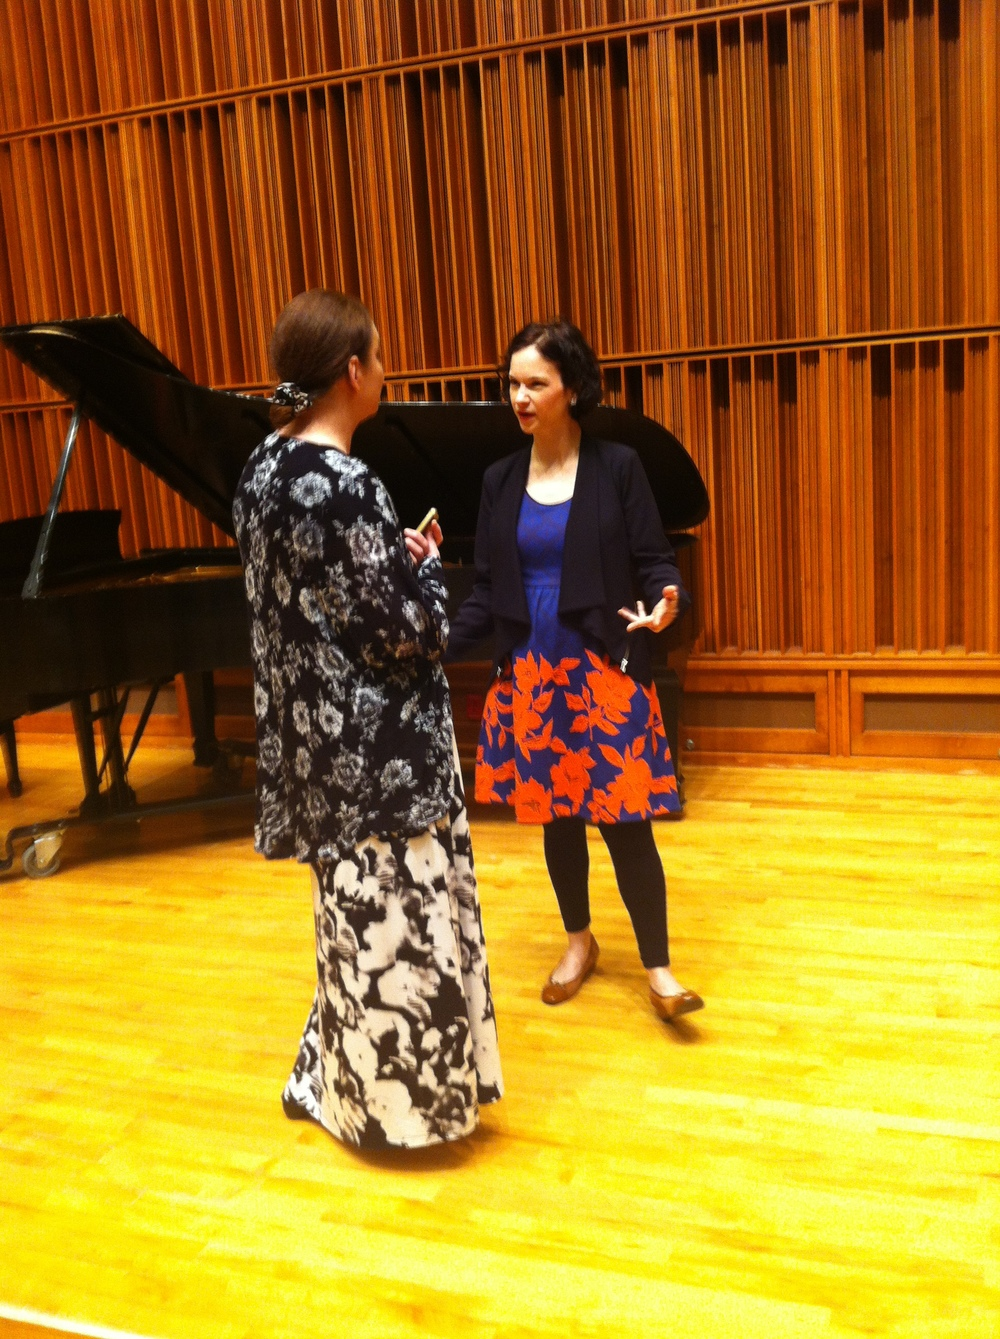 Chatting with Anna Vayman.